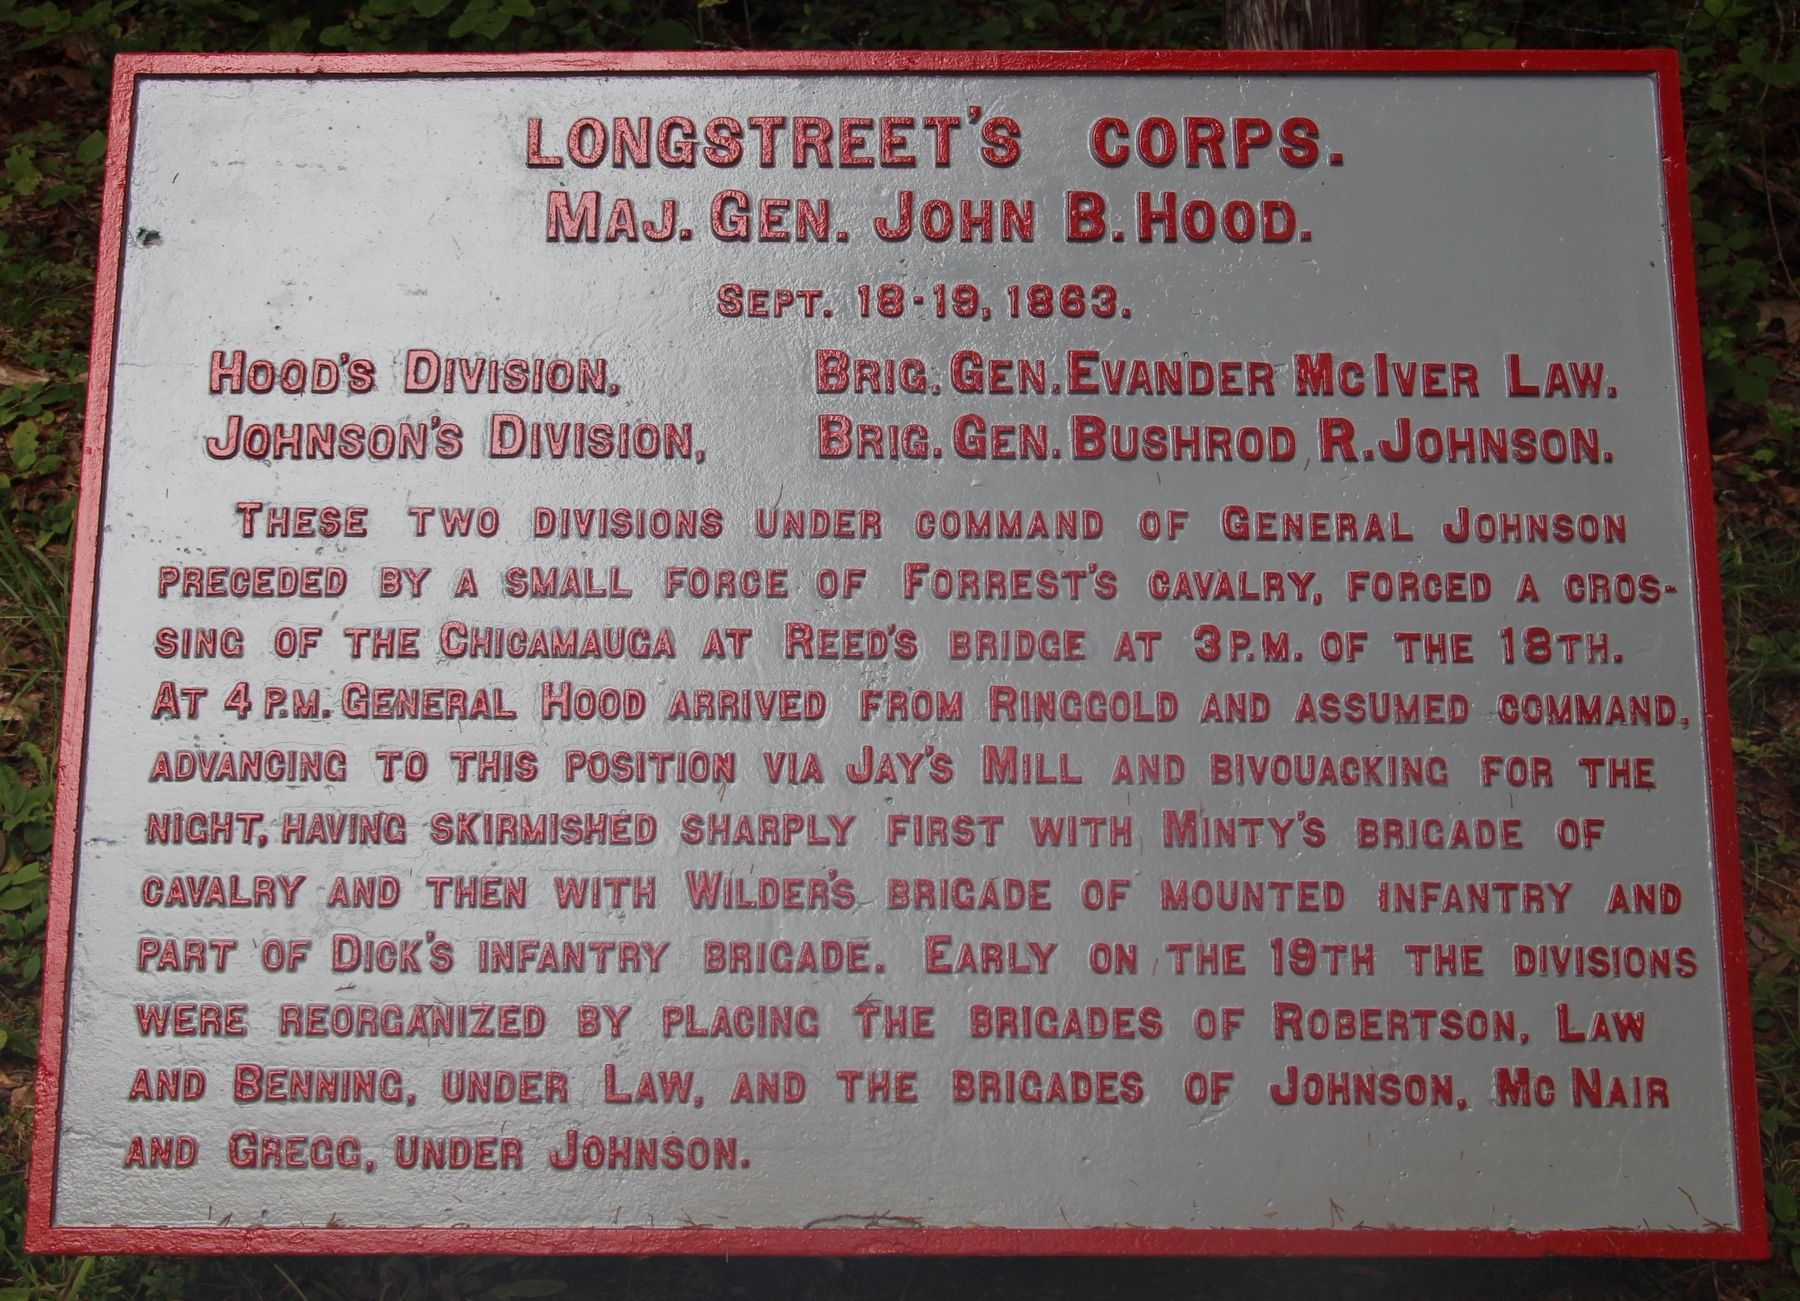 Longstreet's Corps Marker image. Click for full size.